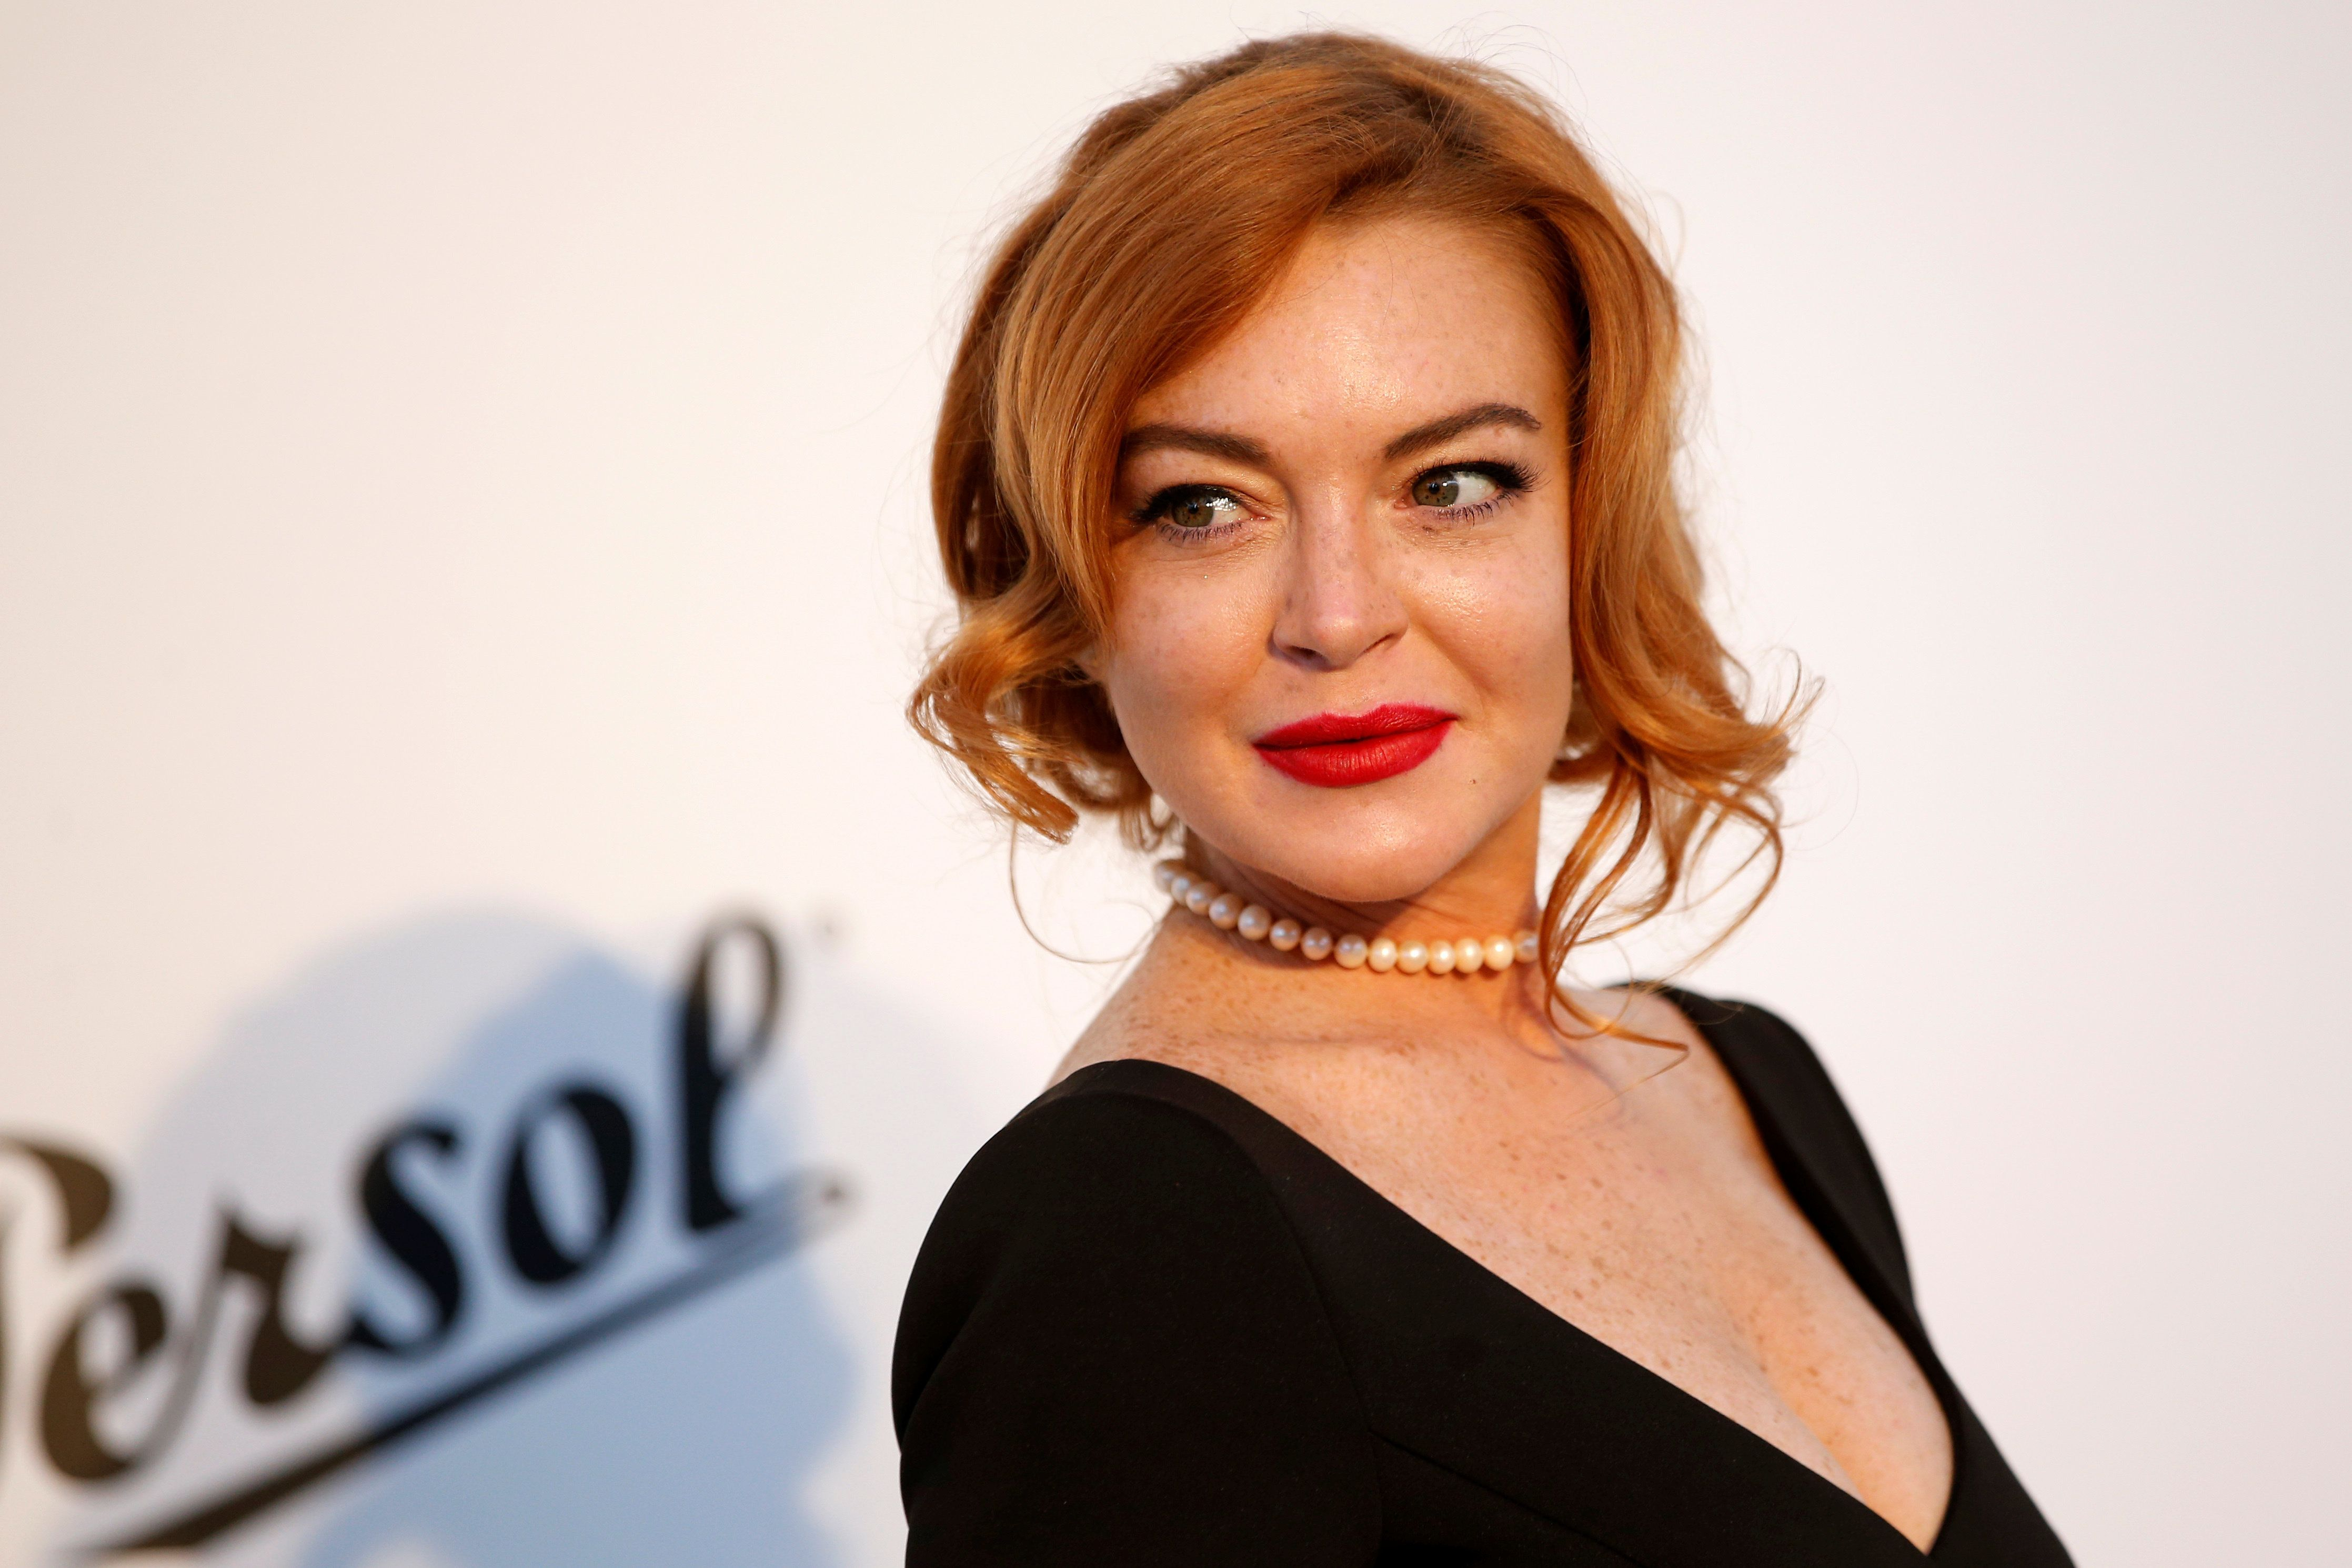 70th Cannes Film Festival – The amfAR's Cinema Against AIDS 2017 event – Photocall Arrivals - Antibes, France. 25/05/2017. Lindsay Lohan poses.       REUTERS/Stephane Mahe